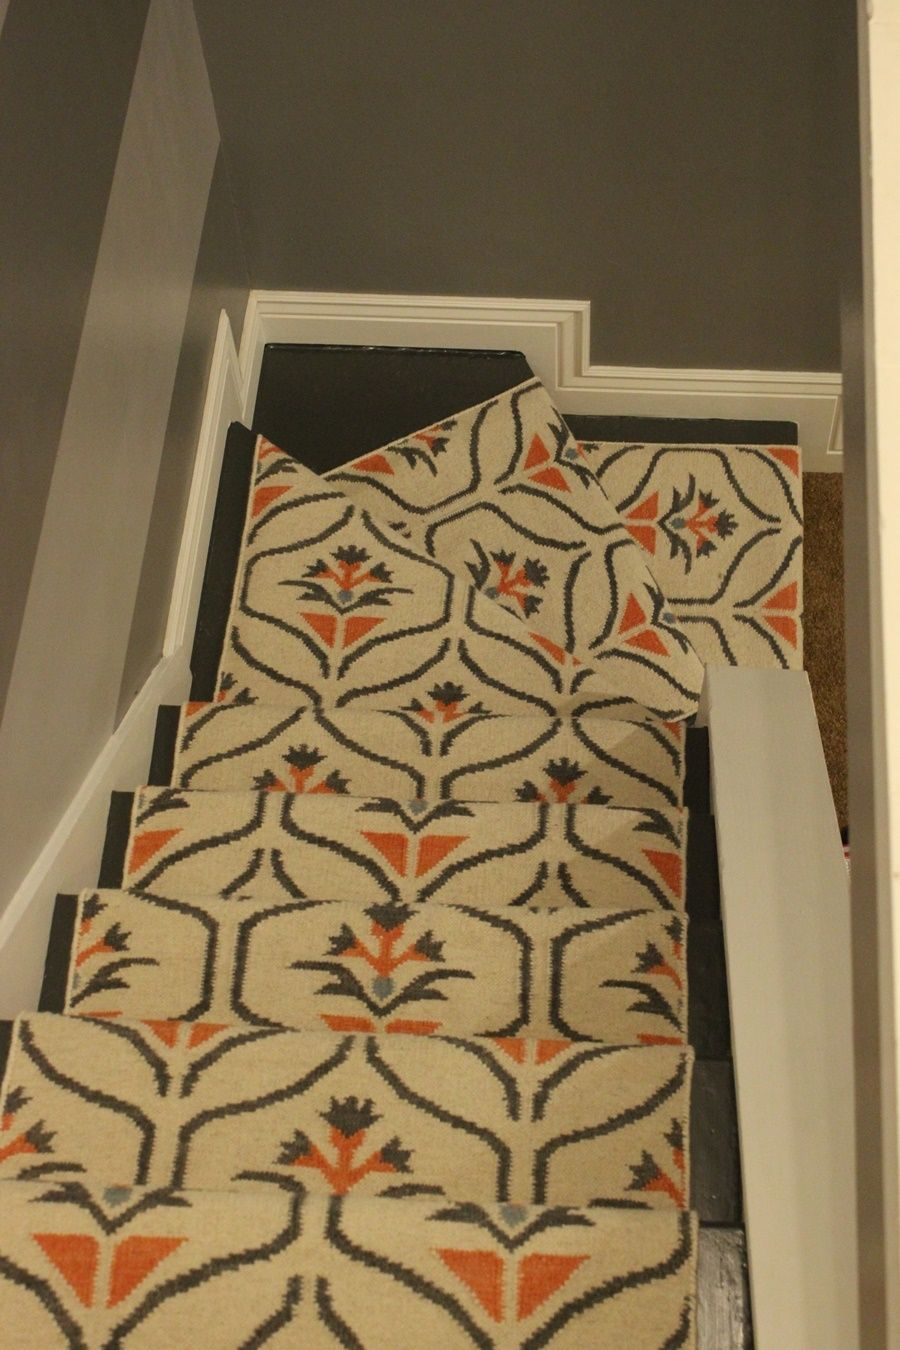 Inspirational Update Your How To Remove Stairs Menards Carpet Runners Stairs Mississauga Install Carpet On Stairs Carpet Runners houzz-03 Carpet Runners For Stairs